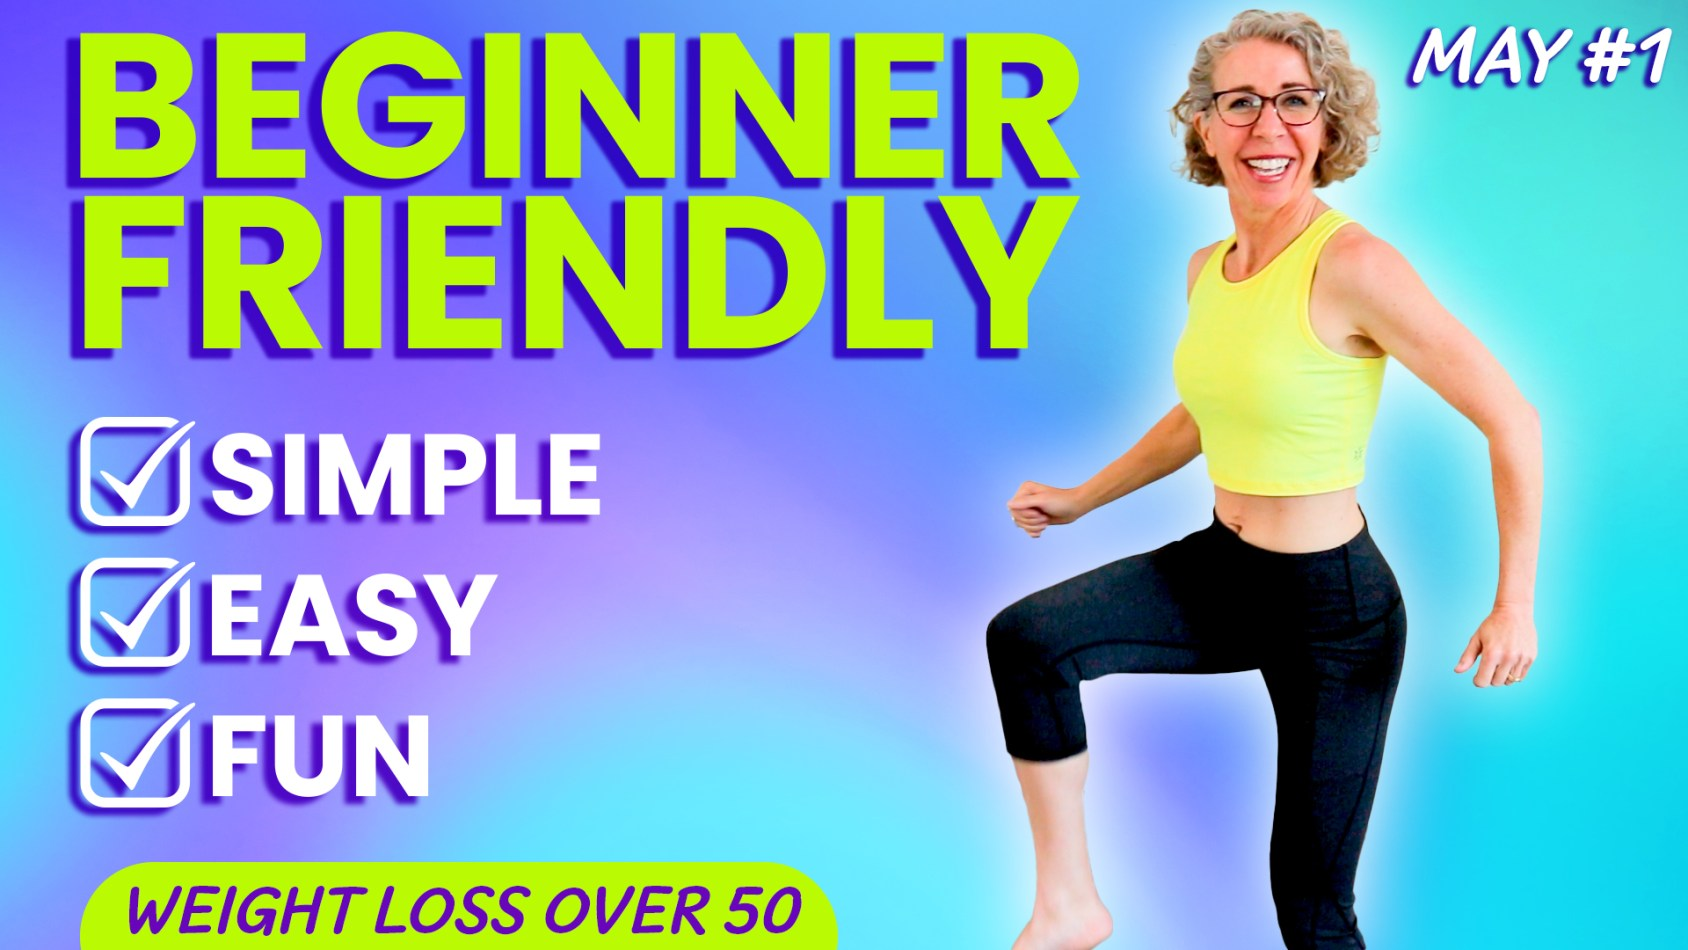 20 Minute Happy CARDIO Workout for WEIGHT LOSS ???? MAY 1